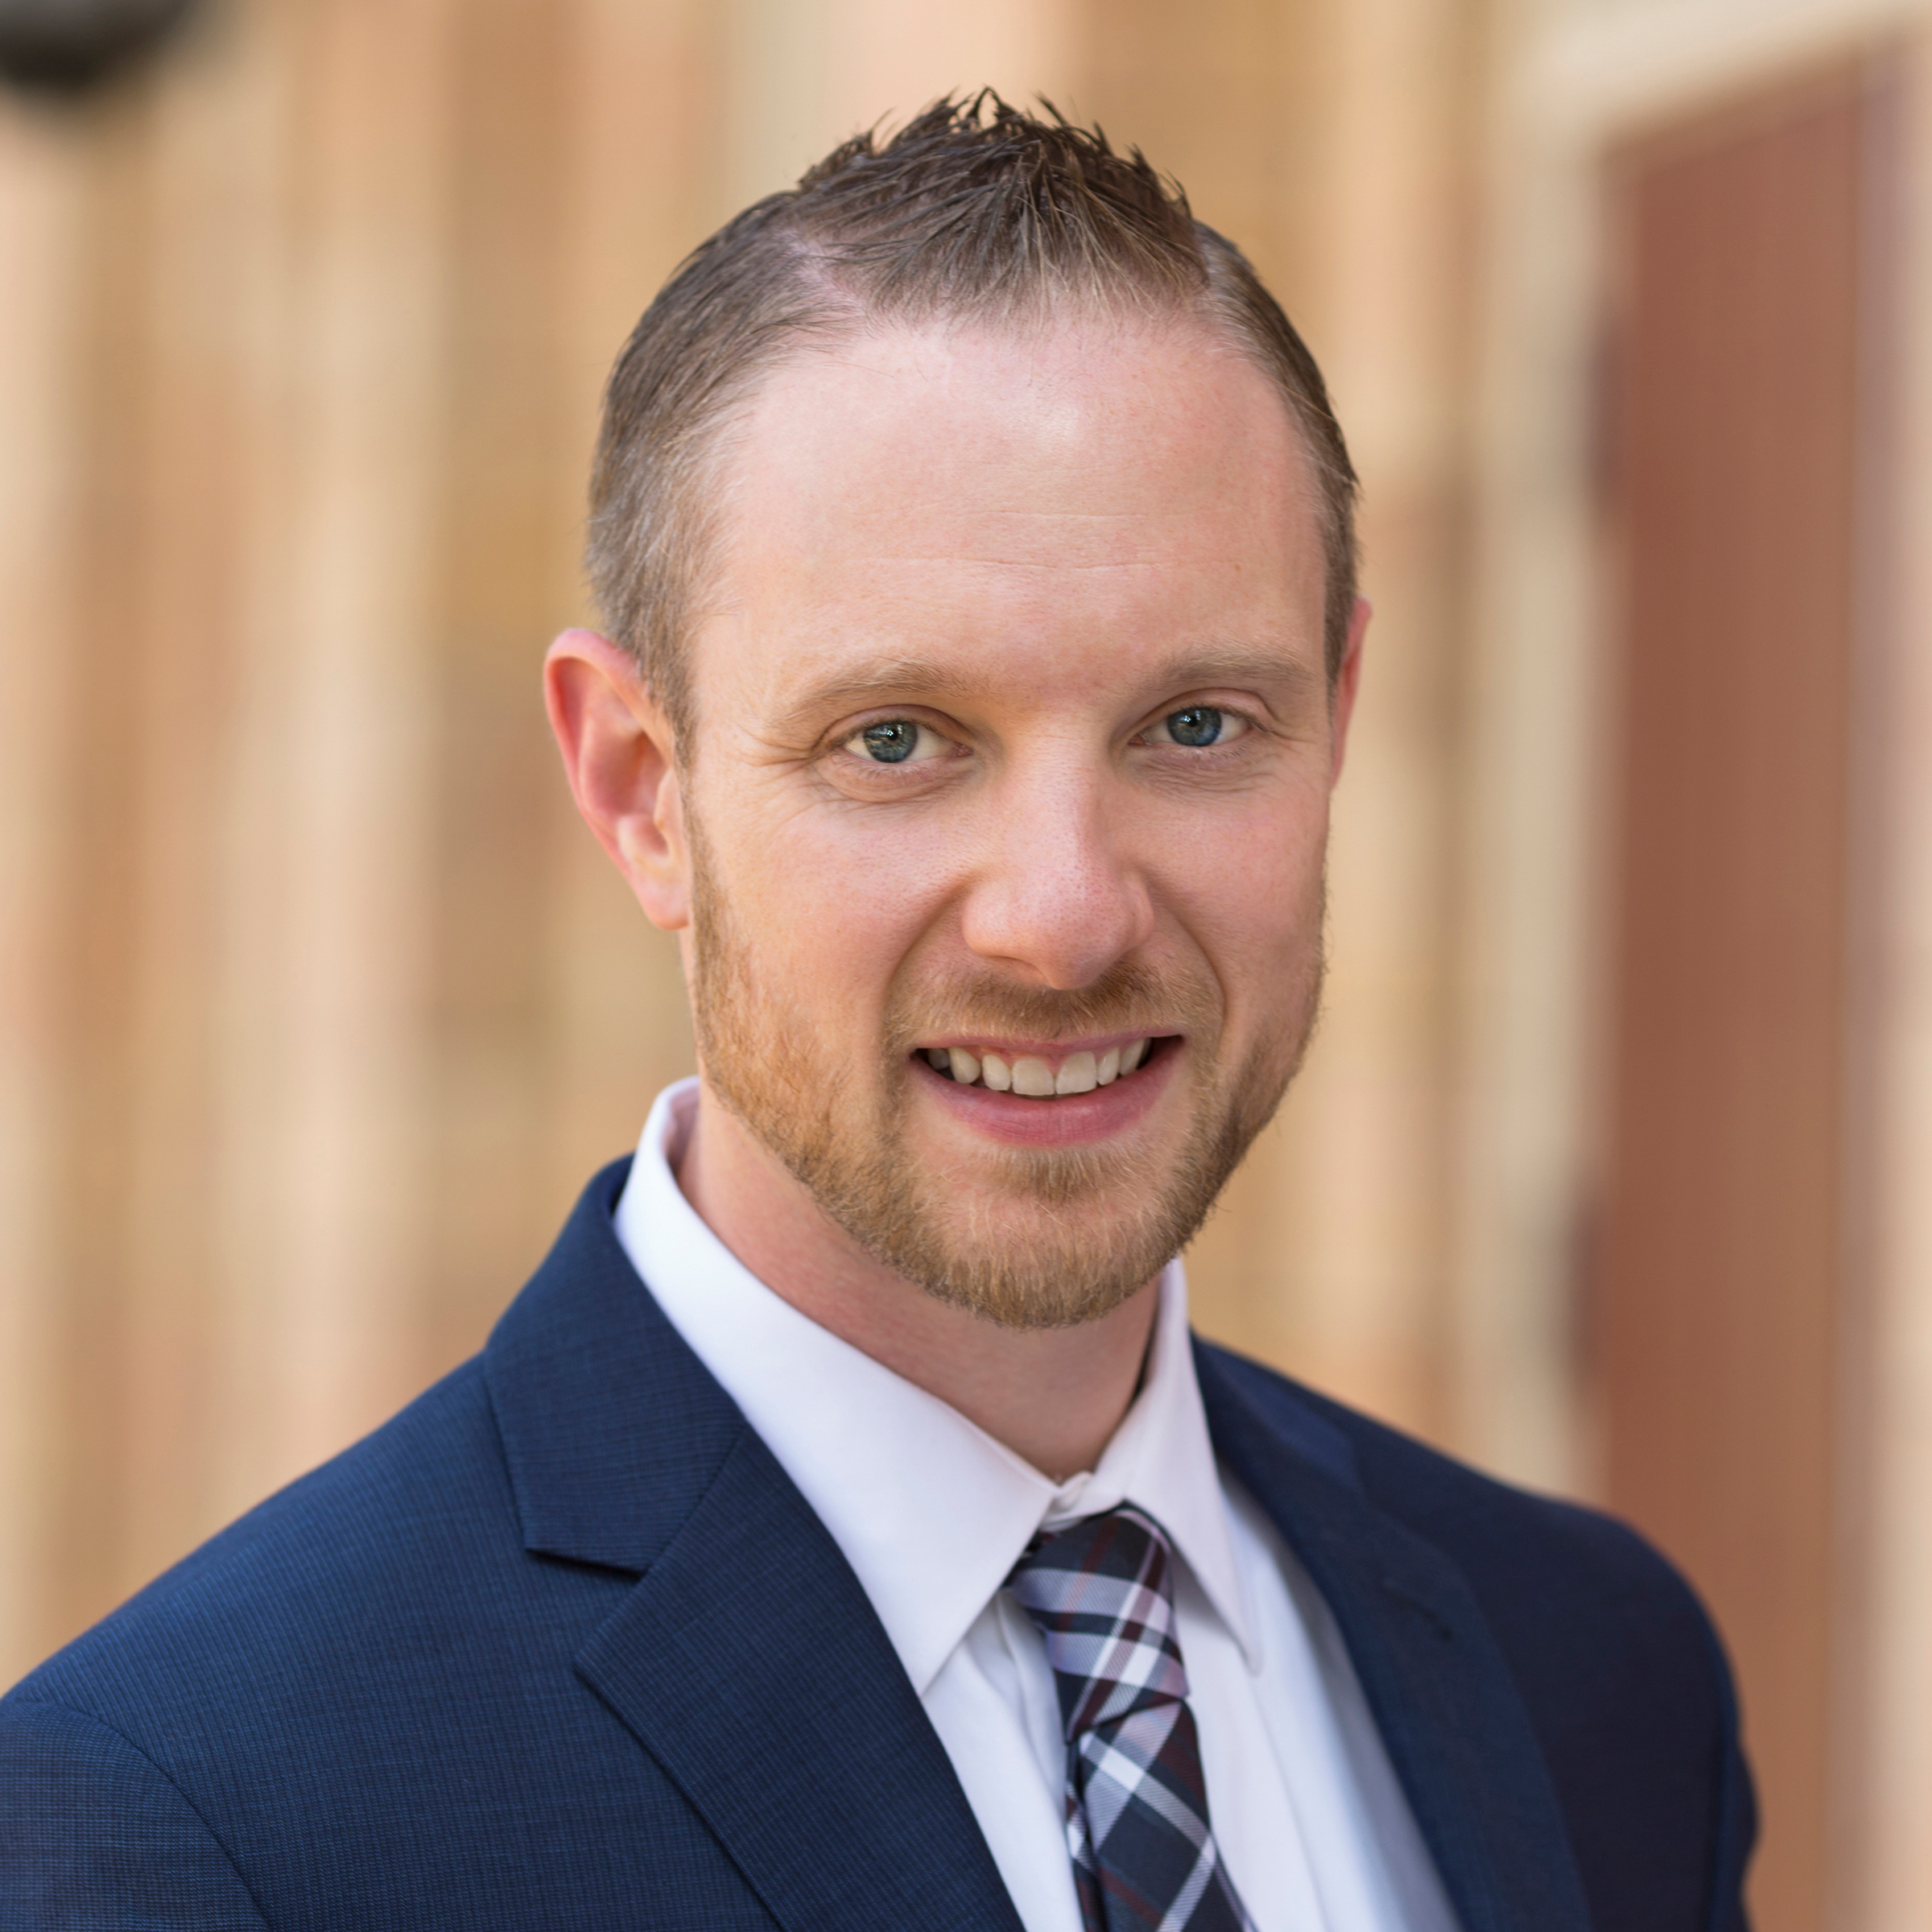 "Joe Uebel  was born in the Cherokee Park area of St. Paul, and grew up in Eagan. After graduating from Eagan High School, he attended the University of St. Thomas, and earned a Bachelor of Arts degree in Business Management and Finance. Joe and his wife Hannah live in St. Paul. Joe has been working with the Team since 2004, and specializes in Eagan and the south suburbs, as well as the ""Cherokee Park"" area of St. Paul."